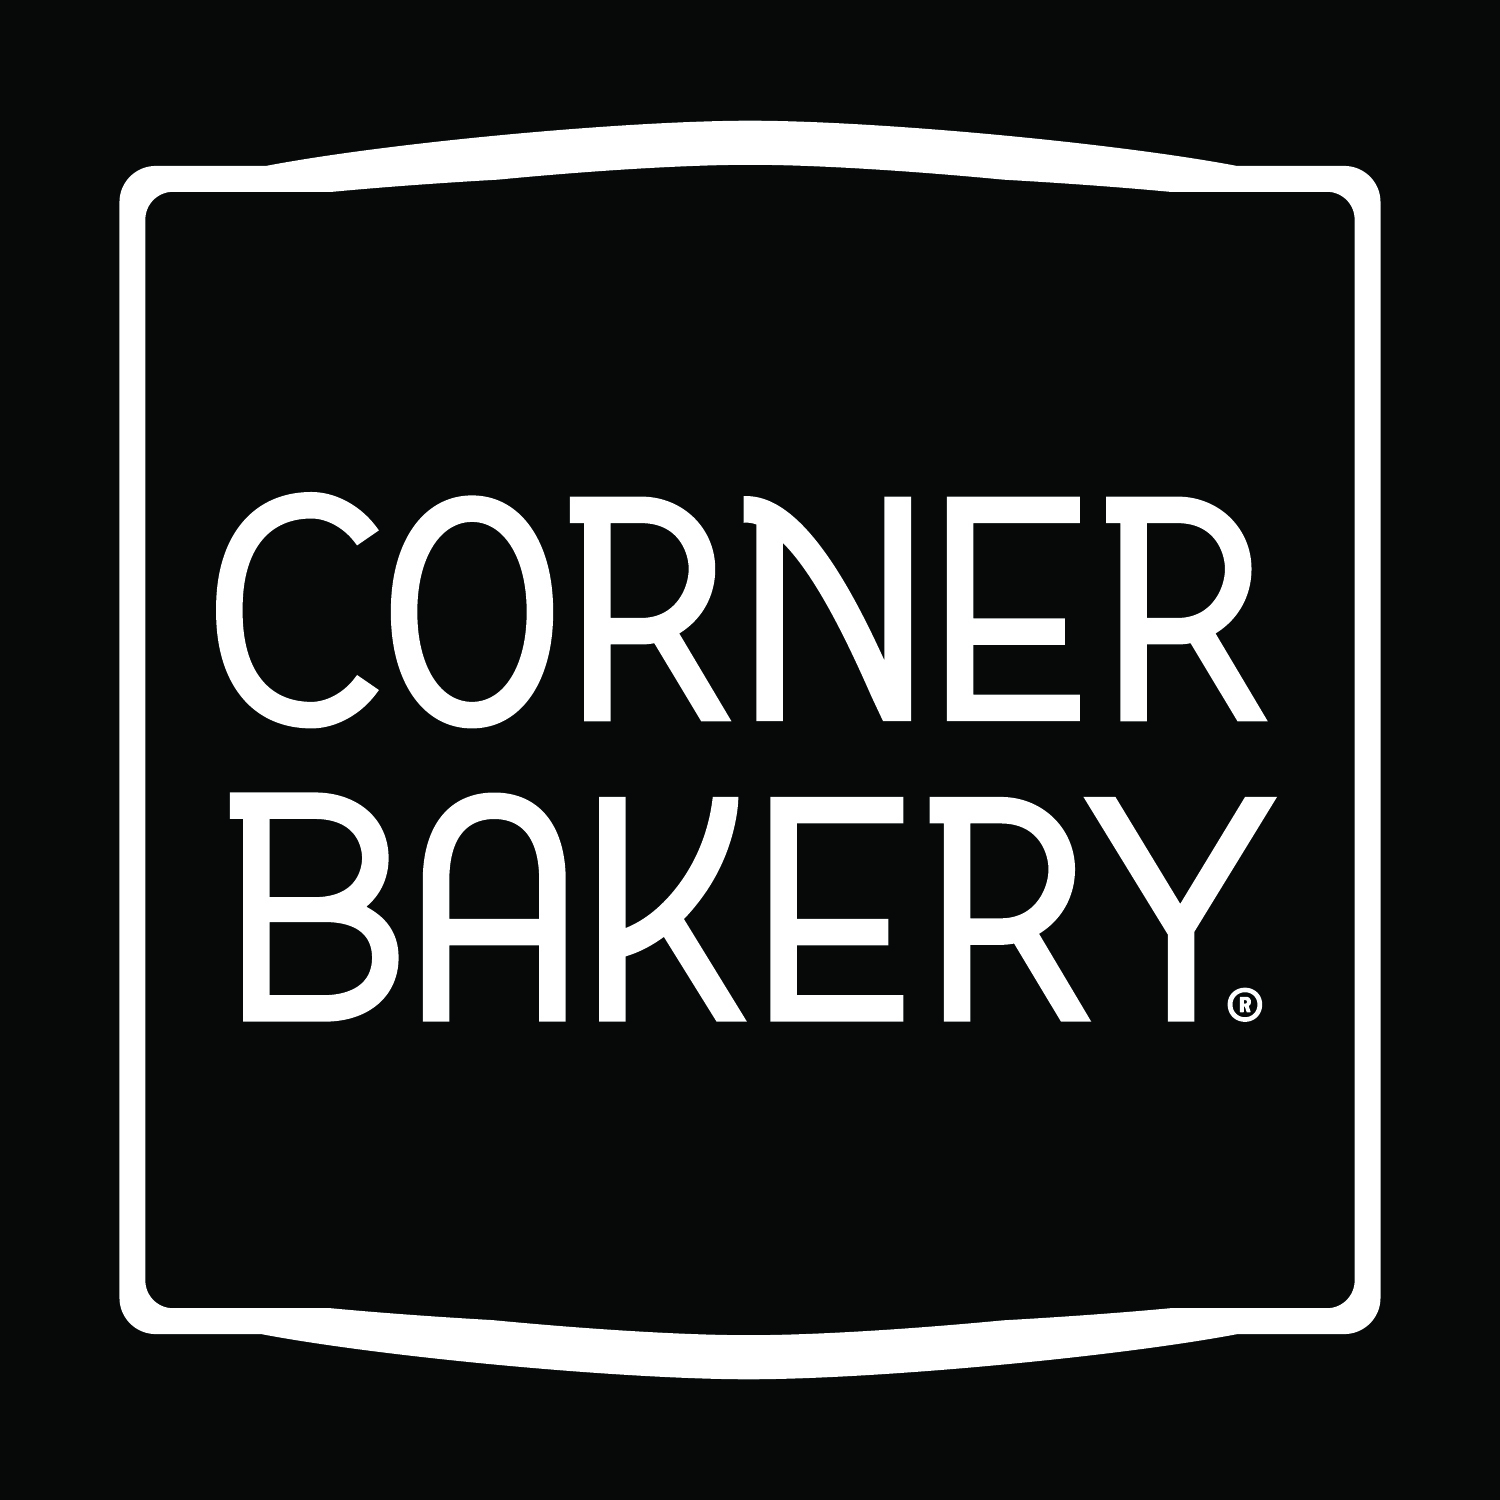 Receive a $5 Bonus Card from Corner Bakery Cafe